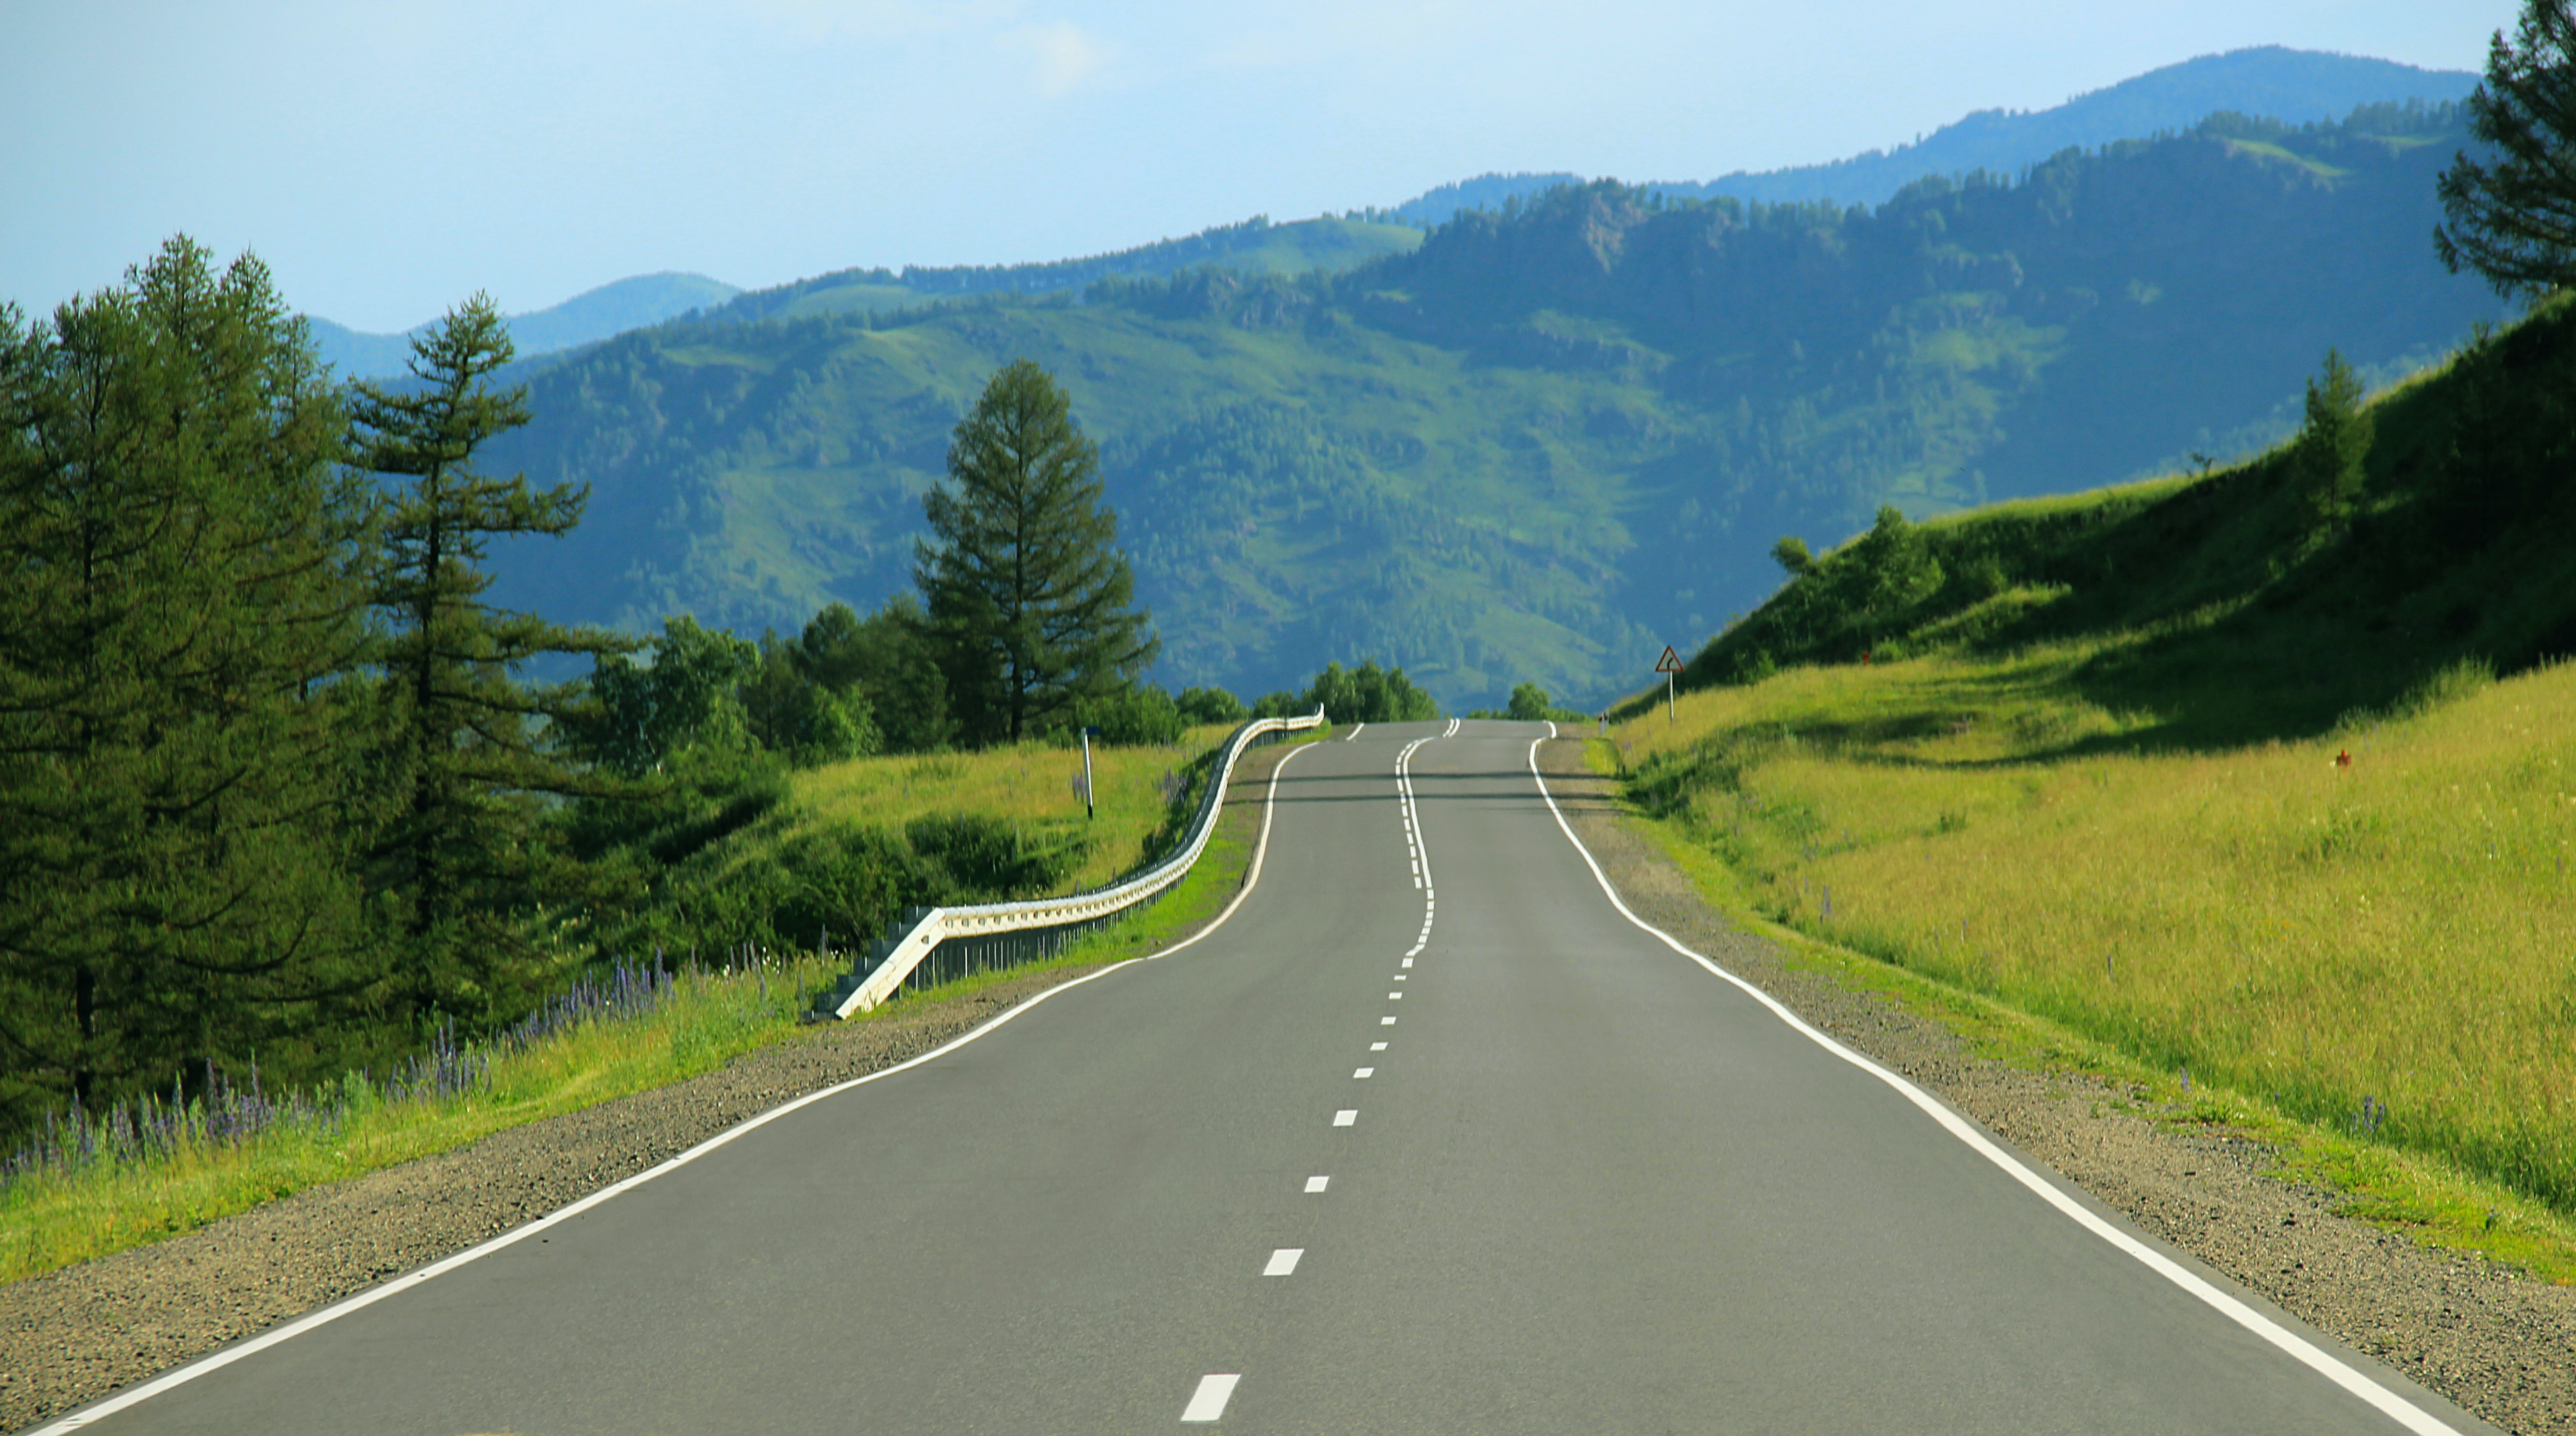 An empty road around green grassy hills on a sunny day